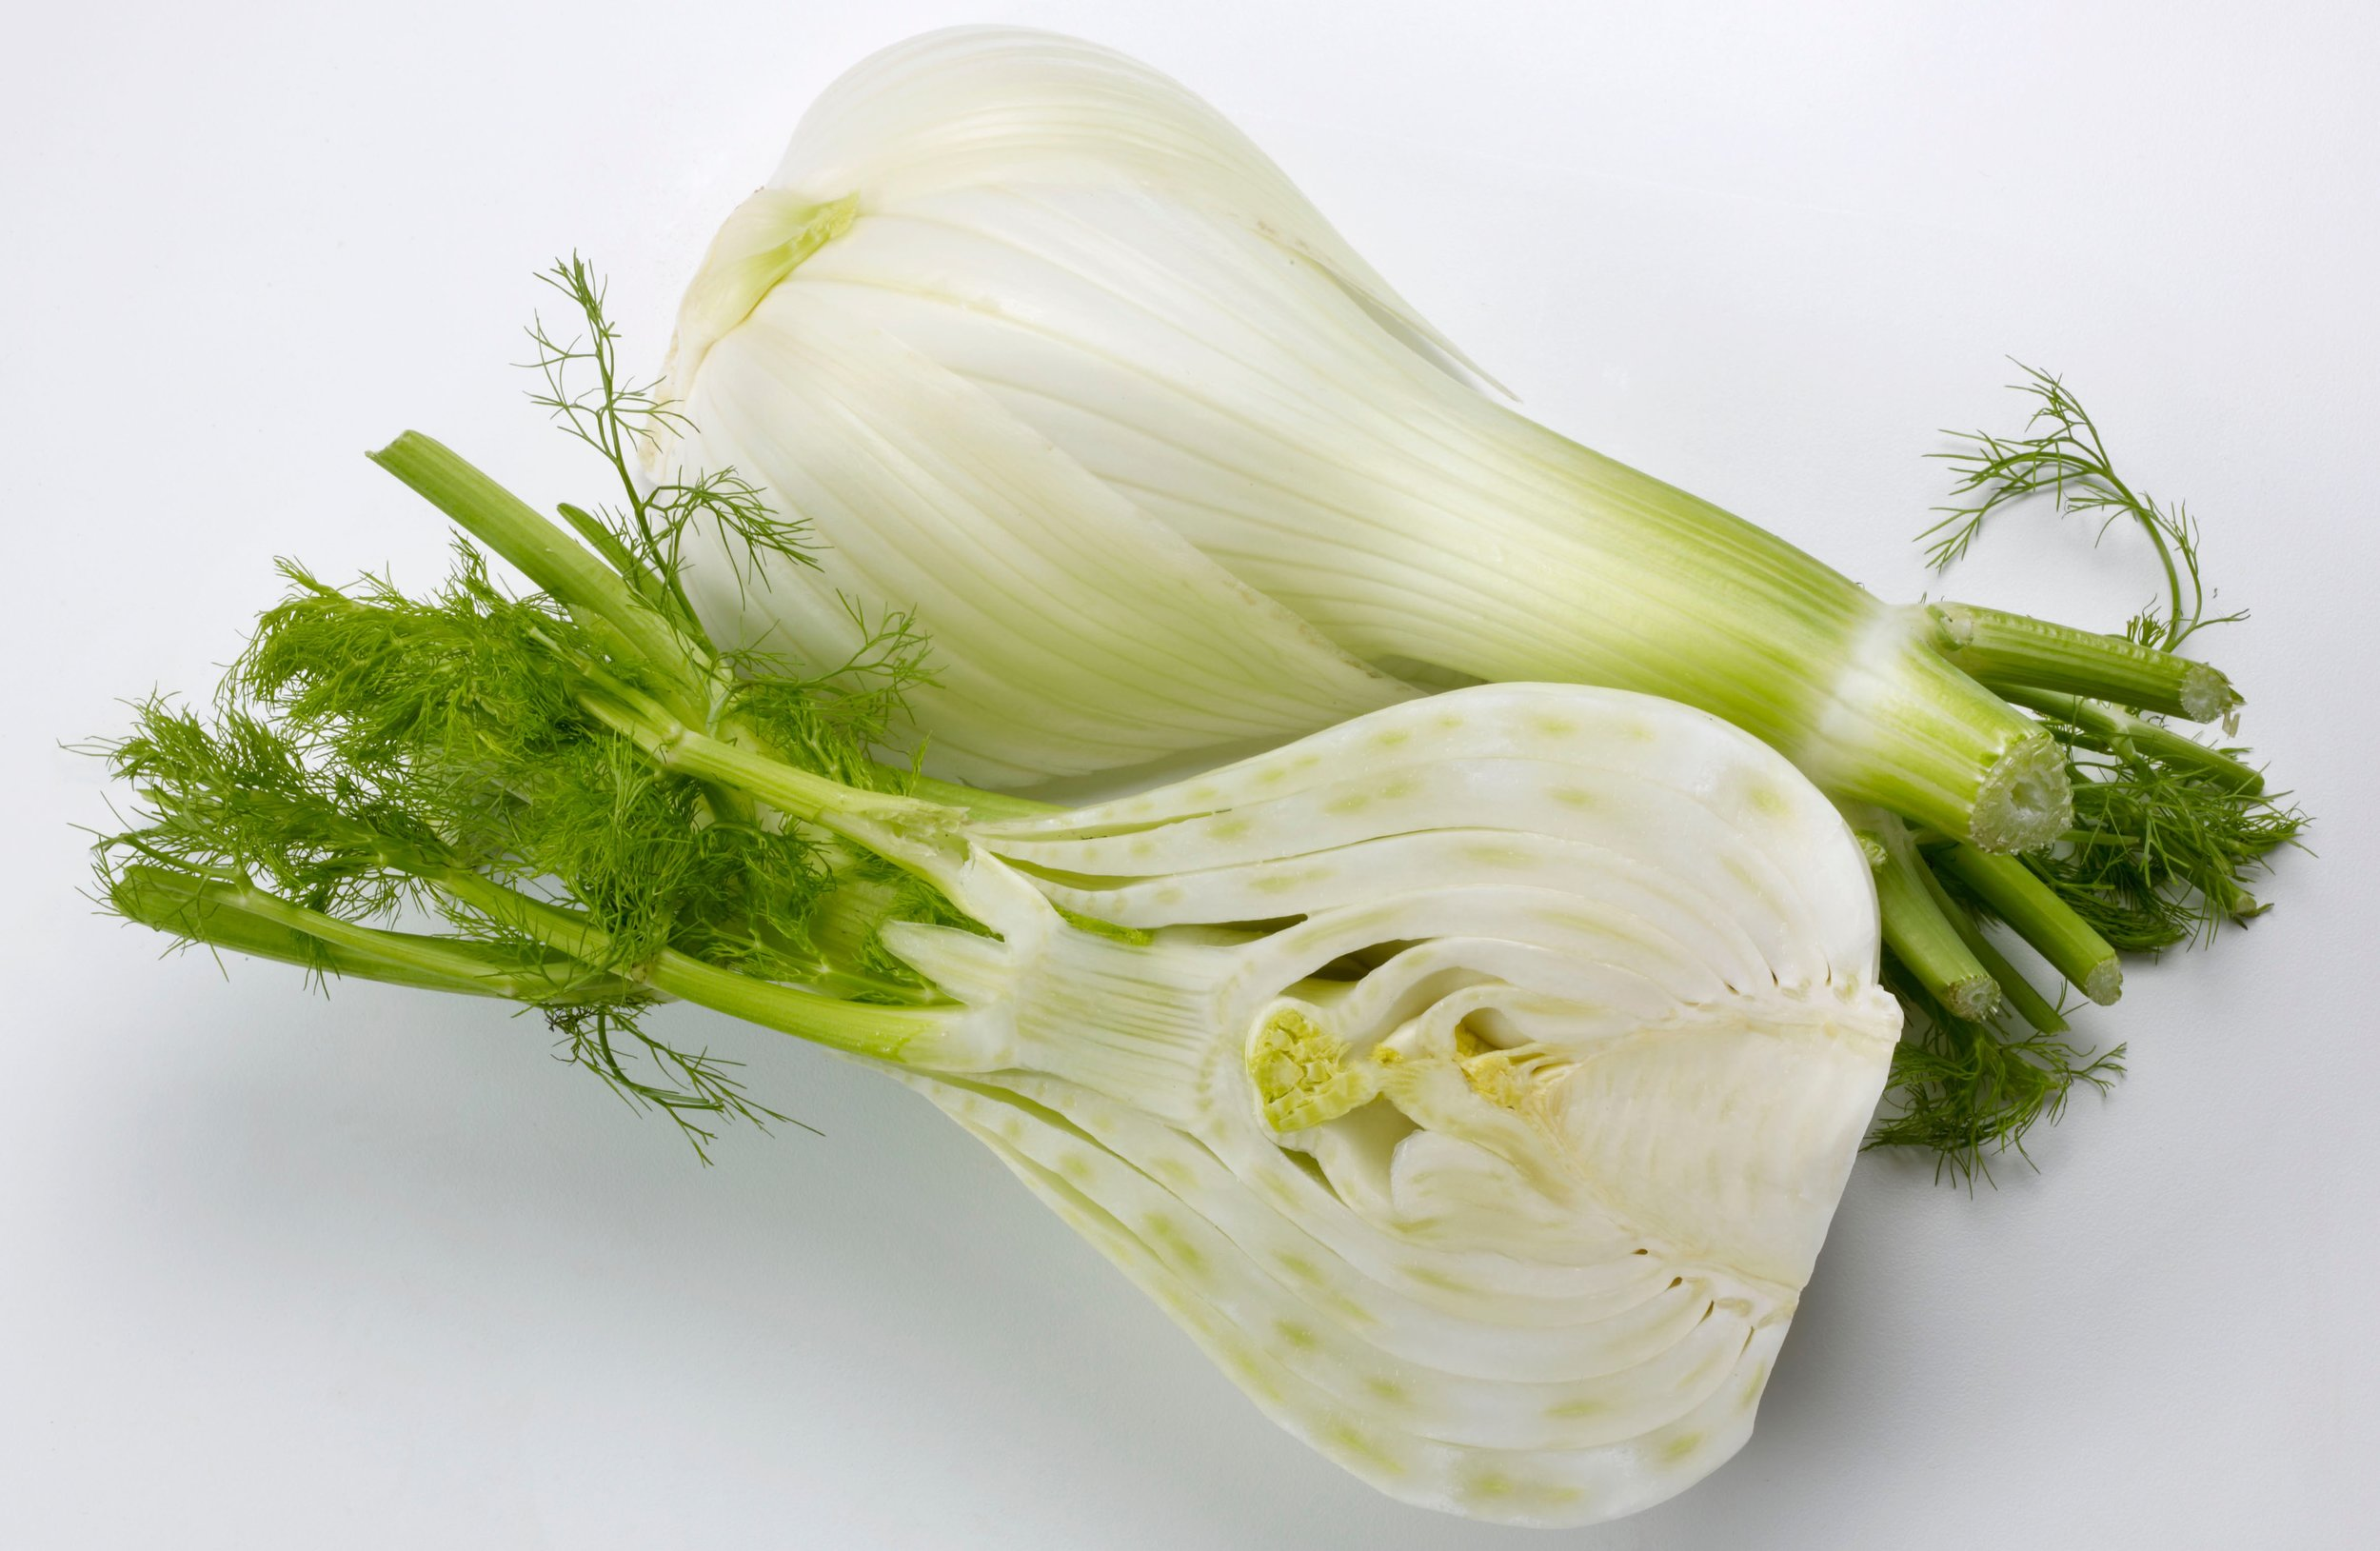 Fresh Fennel Bulb Halves